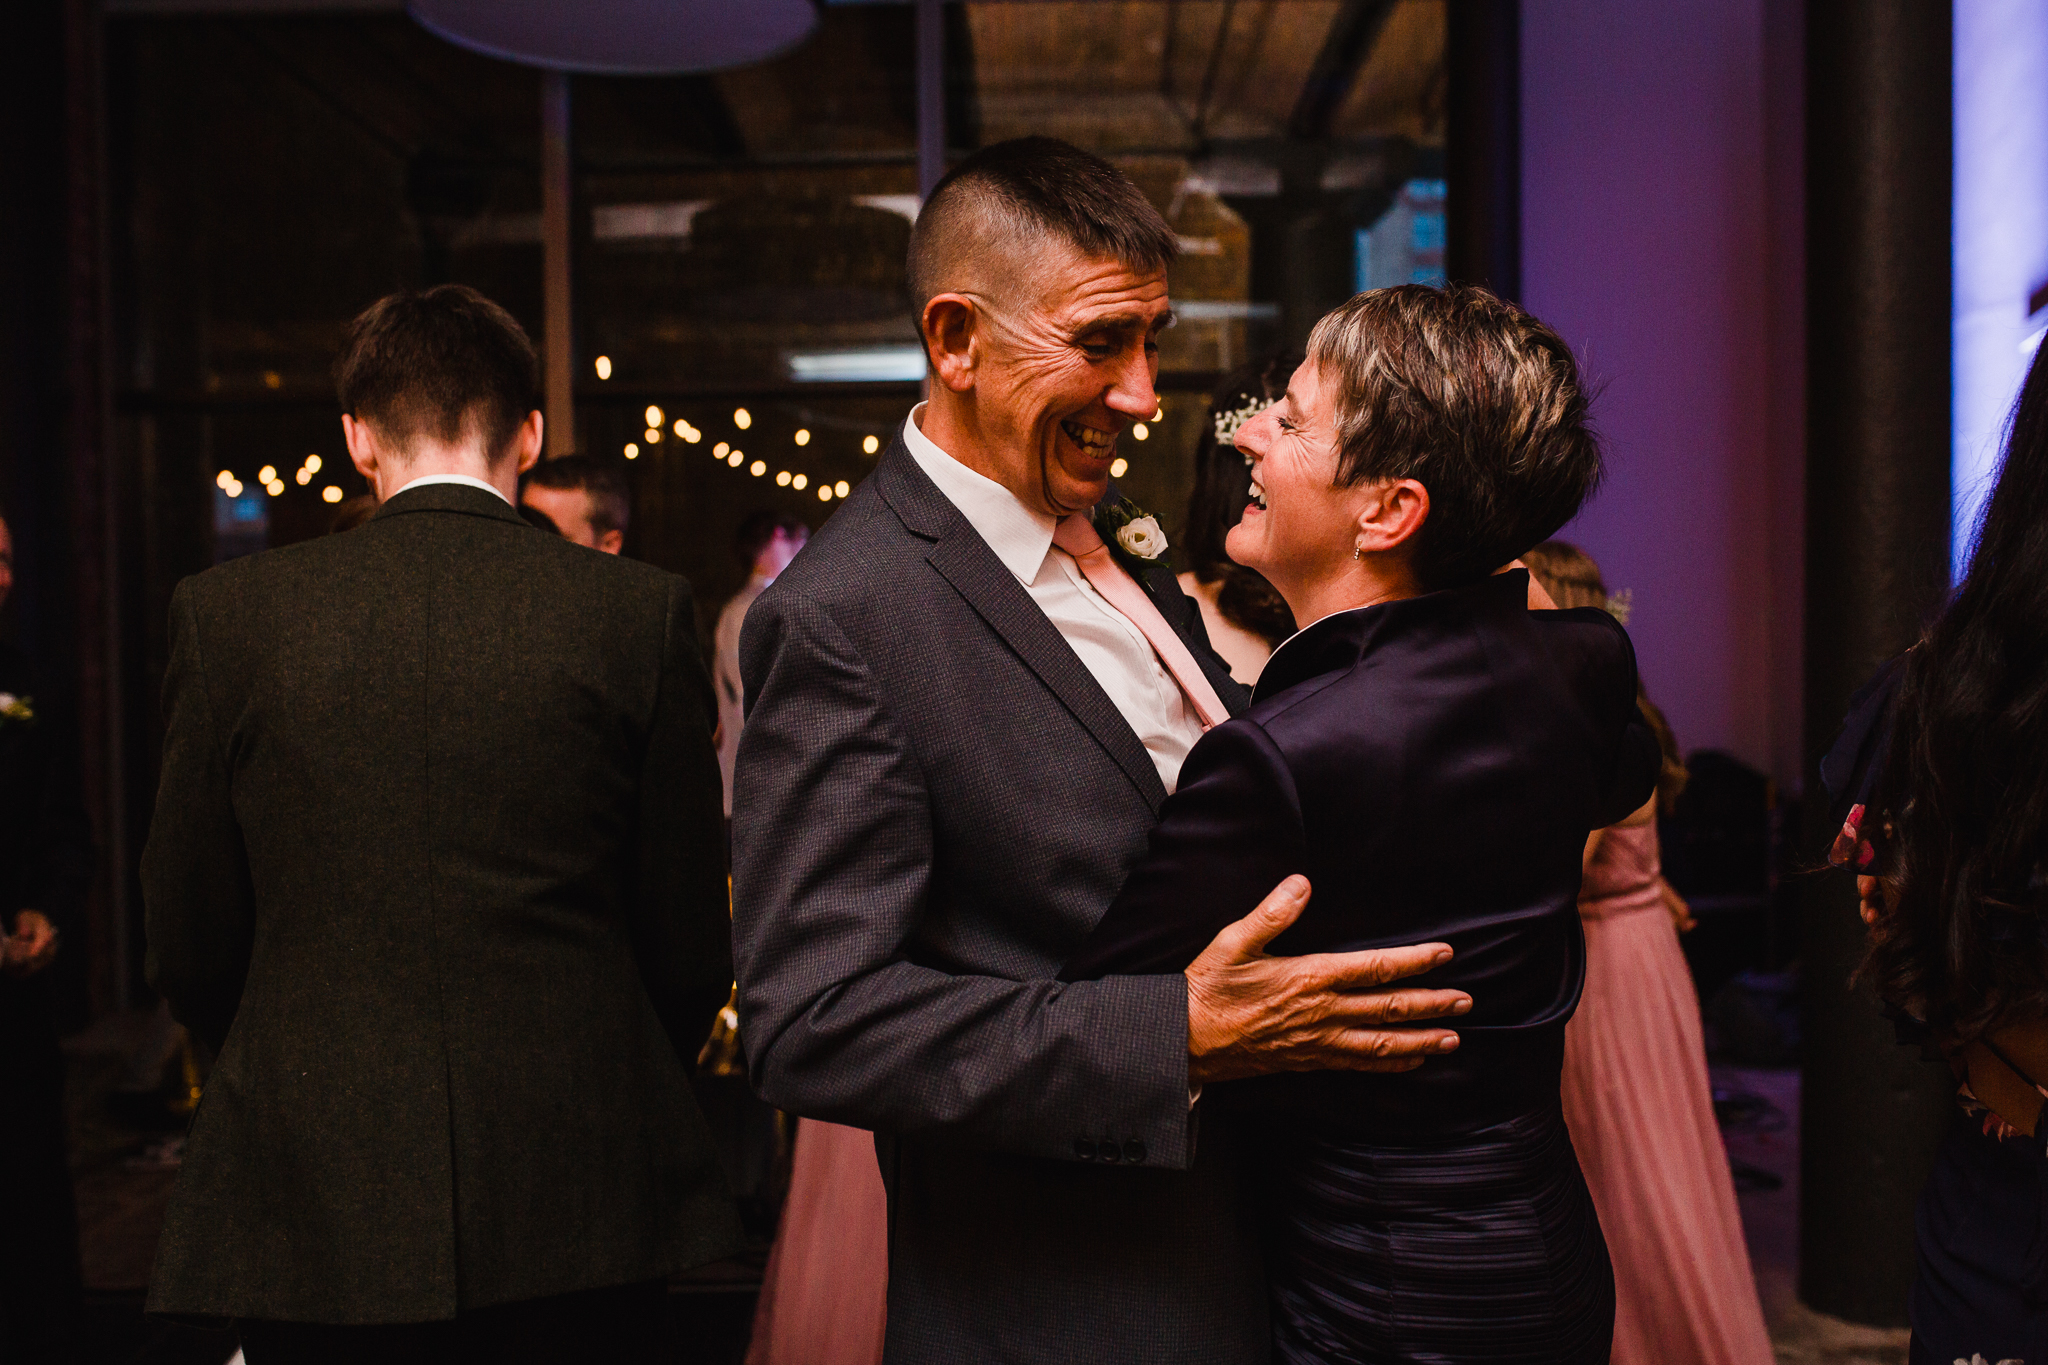 Jess and Ben - Liverpool wedding - mother and father of the groom dancing